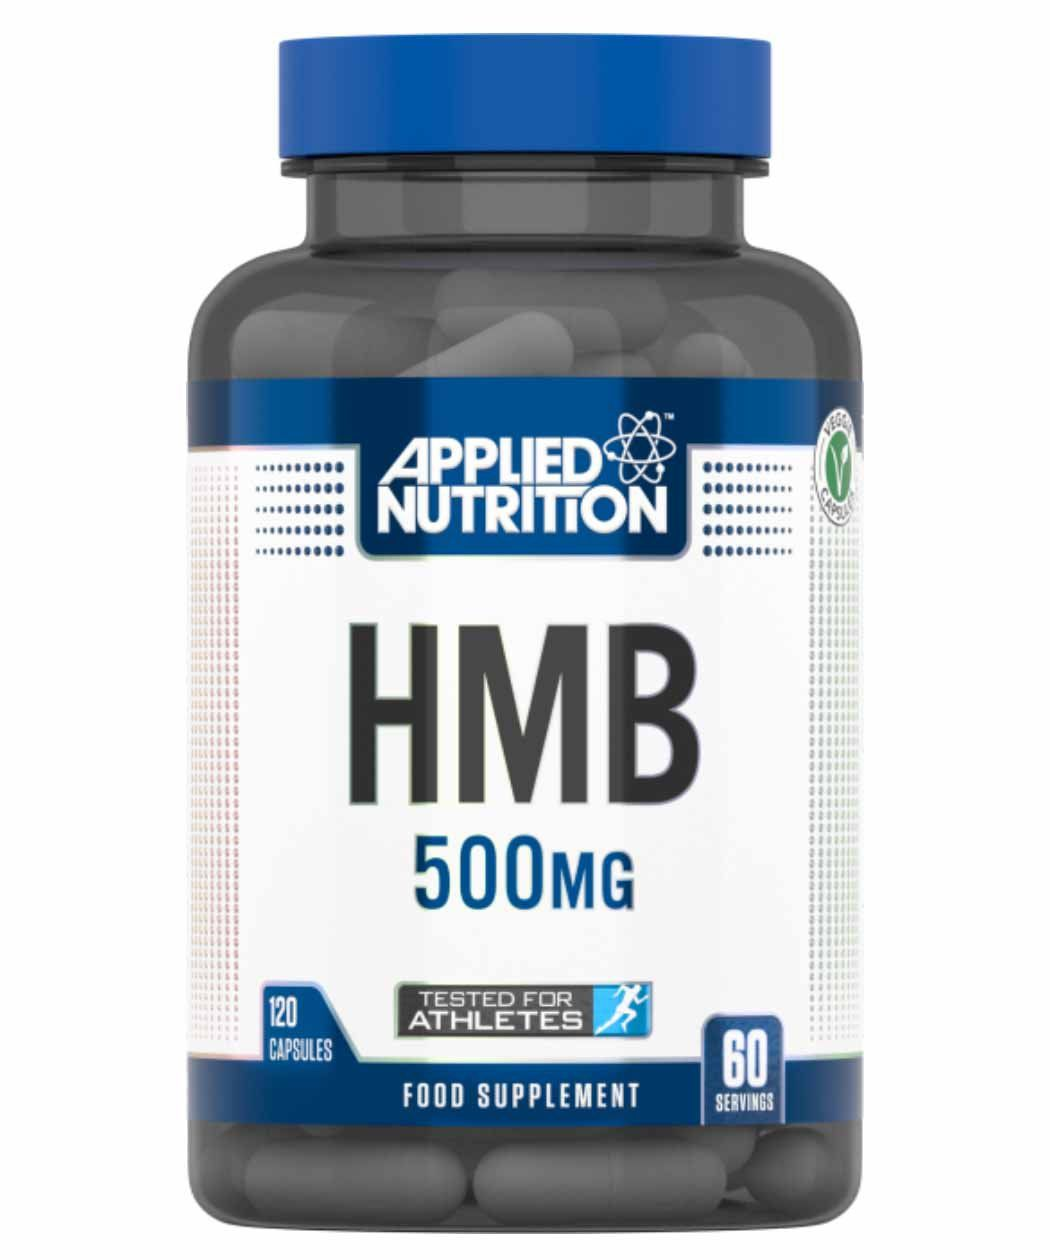 Applied Nutrition HMB 500mg 120 Caps